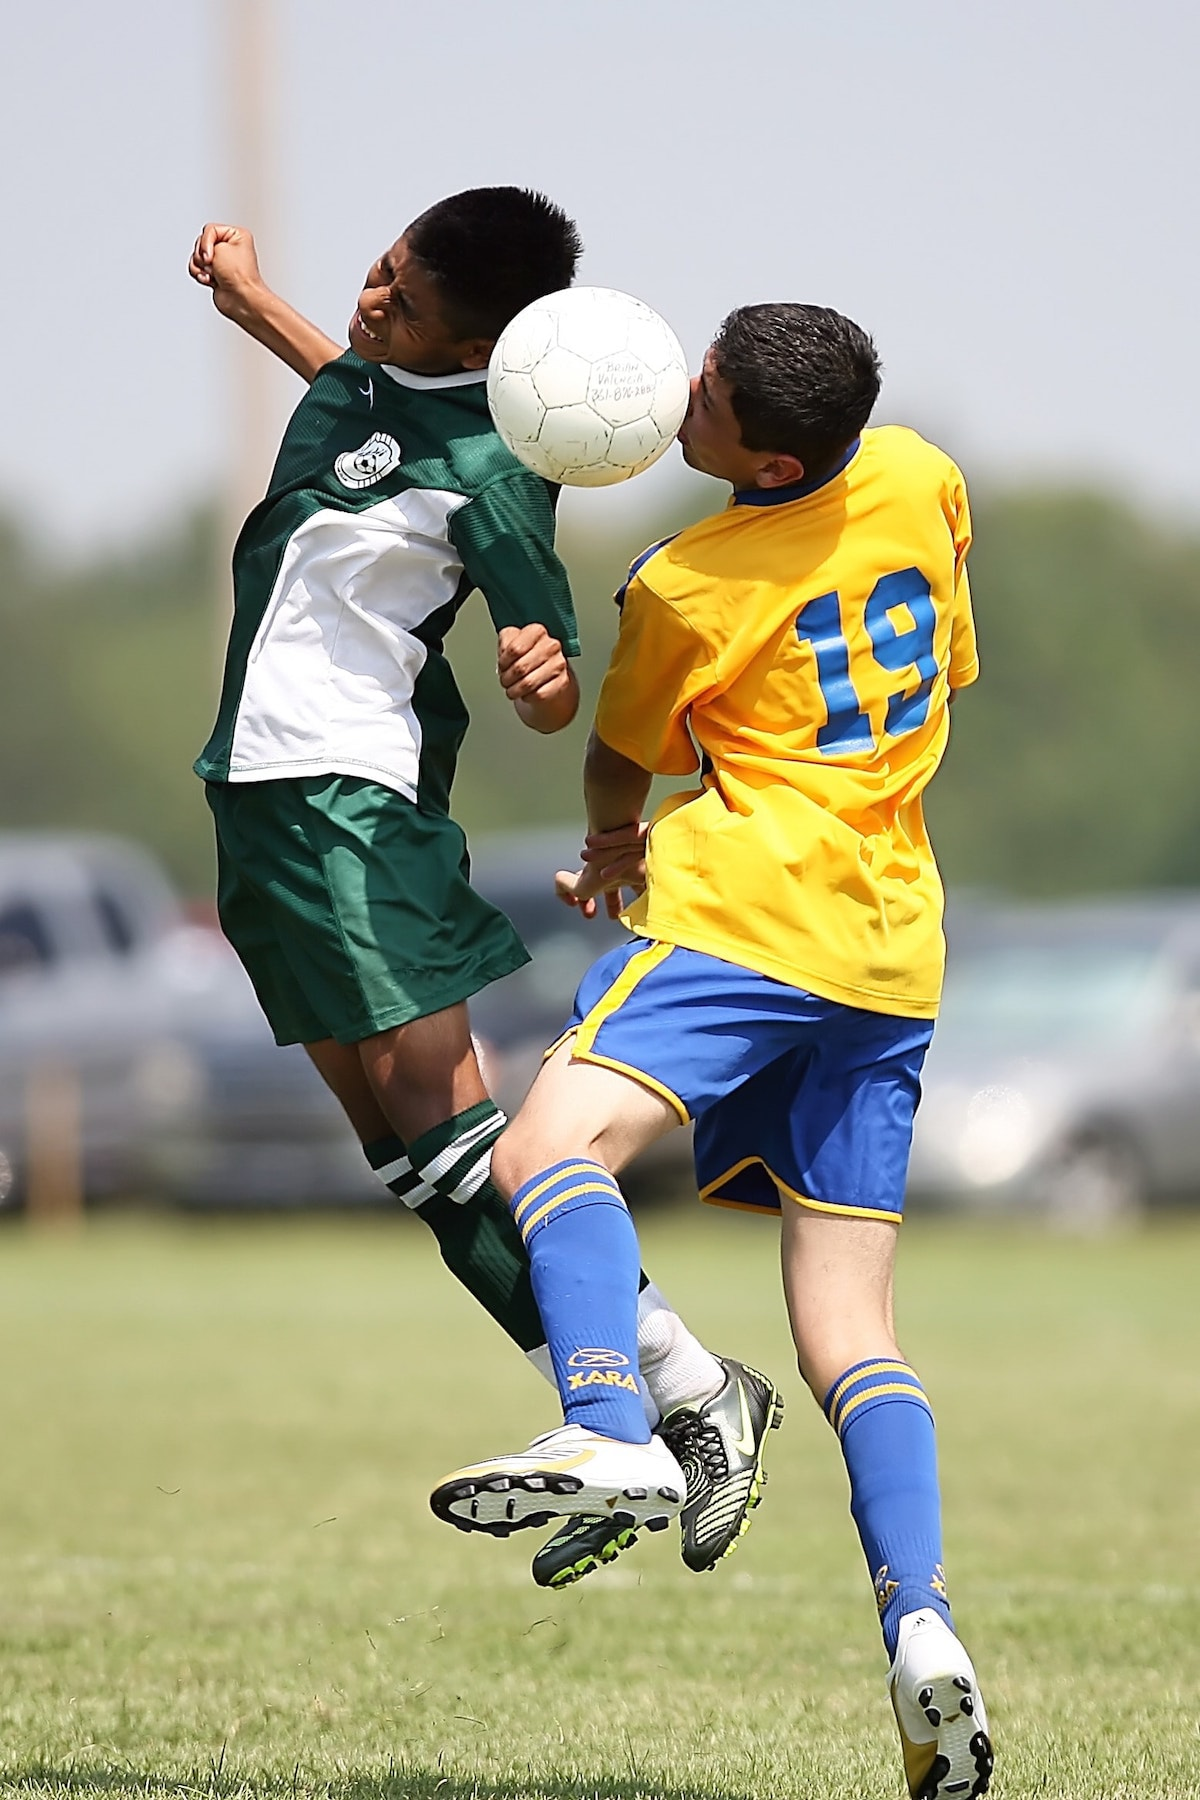 Athletic kids playing soccer, sports related-injuries